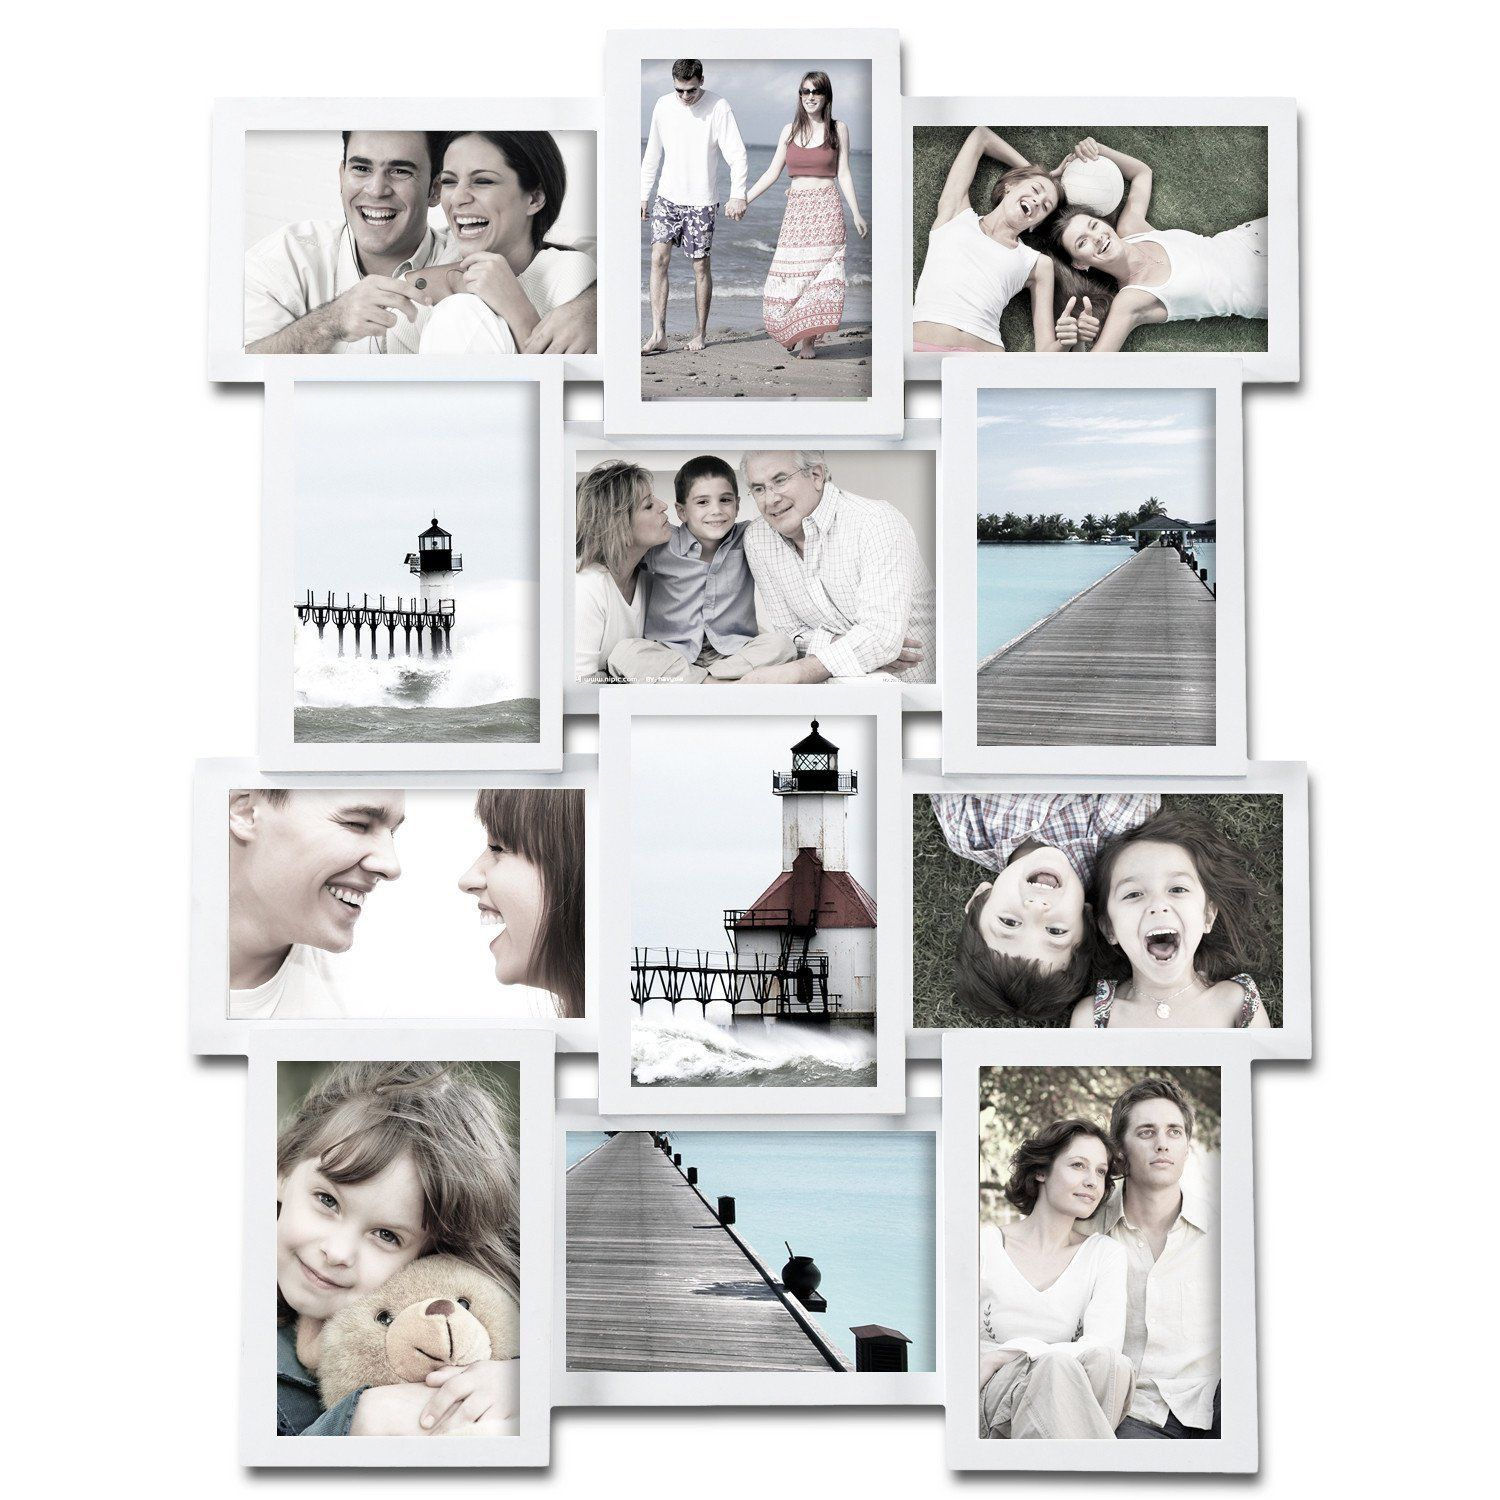 12 Photo Display Collage Wall Frame | Pinterest